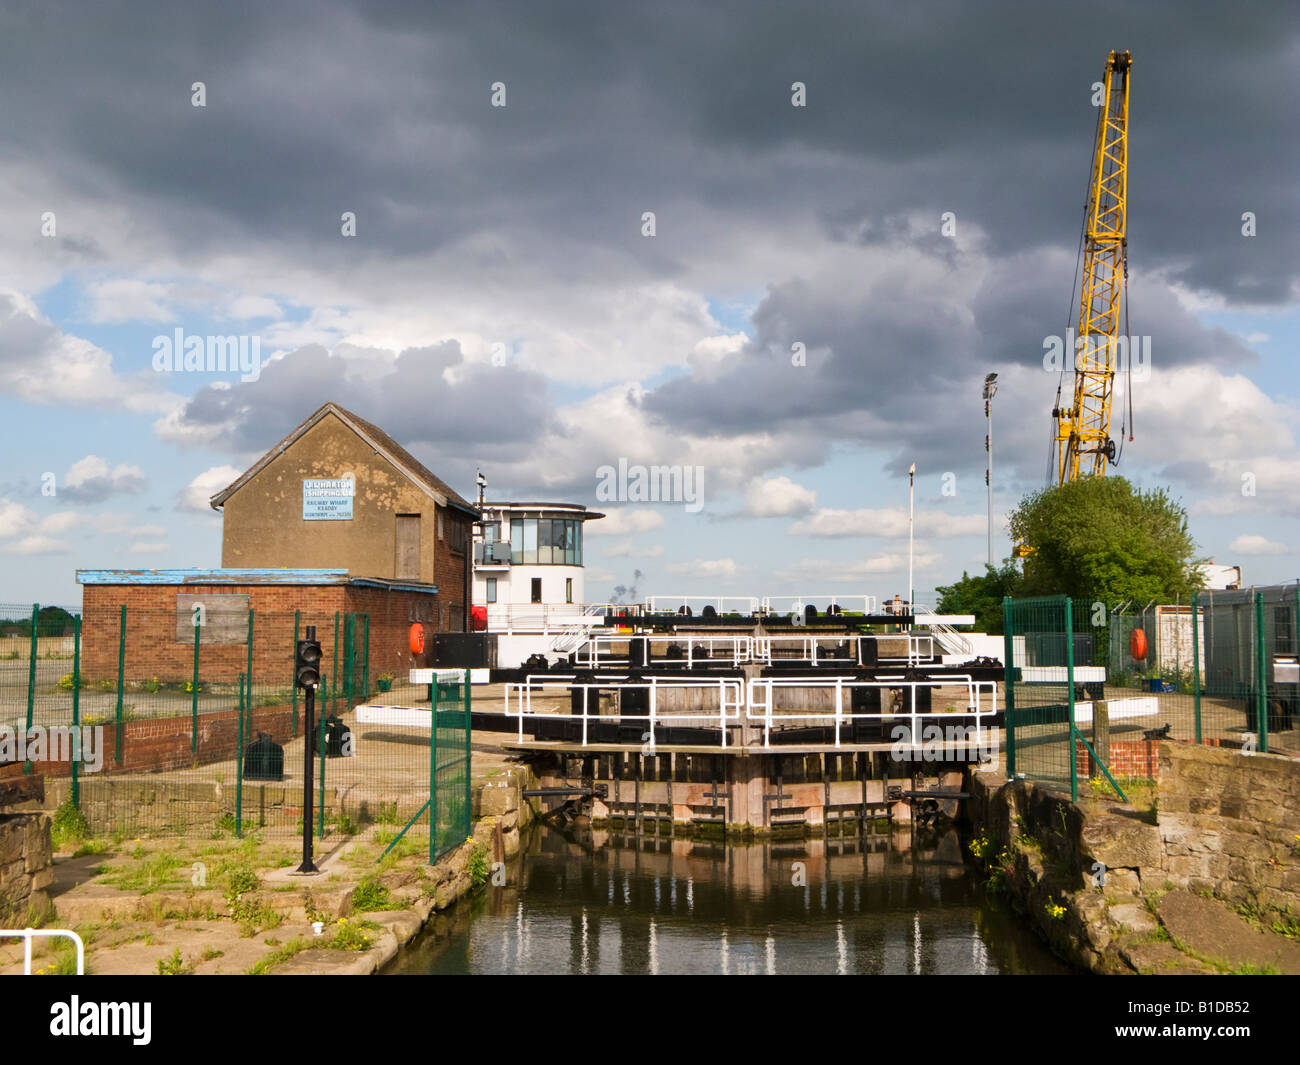 Multiple canal lock gates on the Stainforth and Keadby Canal at Keadby Lock, Keadby near Scunthorpe, North Lincolnshire, - Stock Image